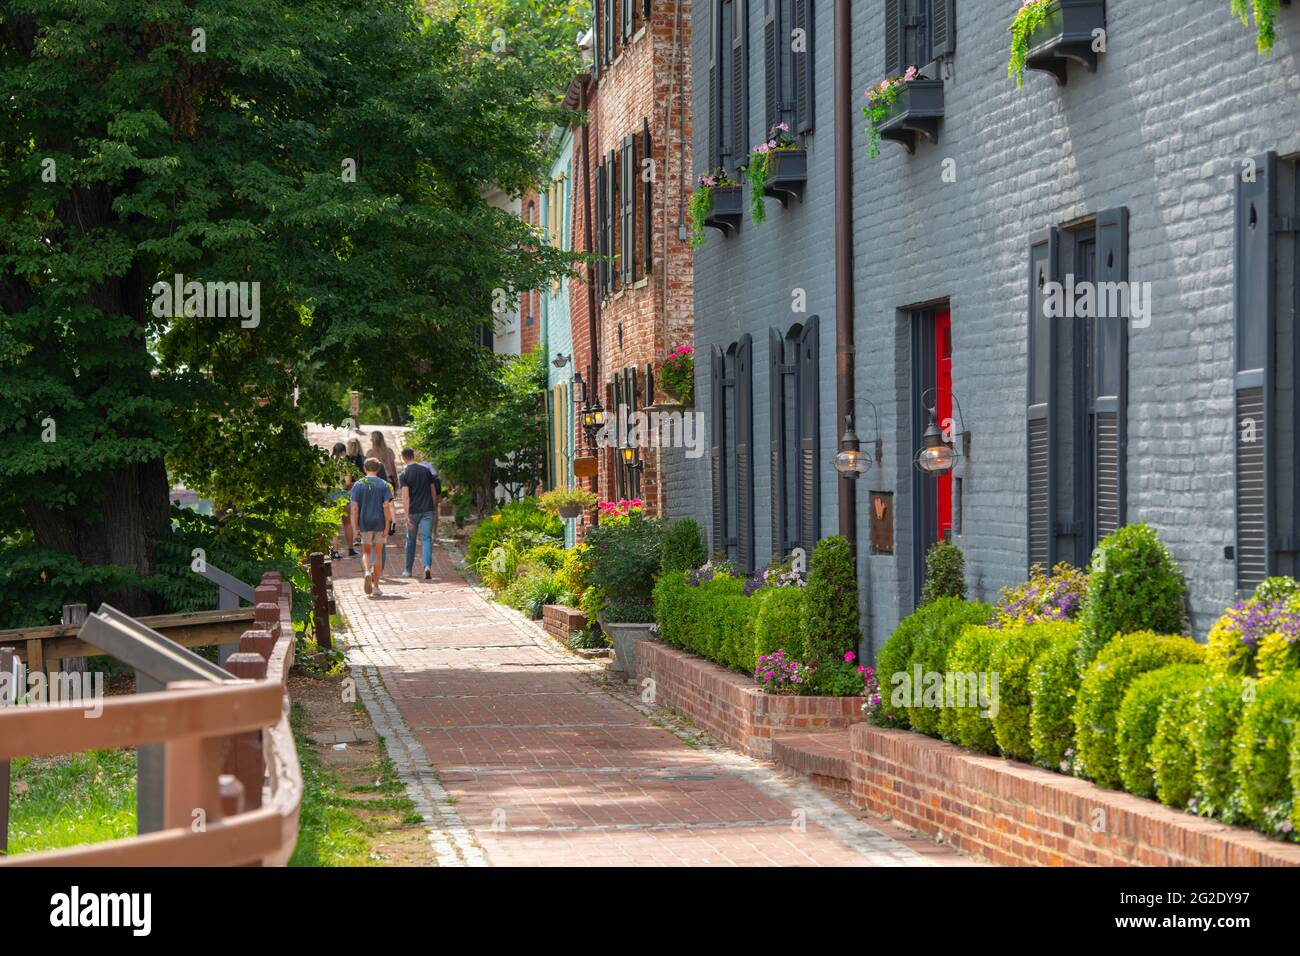 usa-washington-dc-georgetown-old-homes-along-the-c-o-canal-towpath-now-a-walkway-2G2DY97.jpg